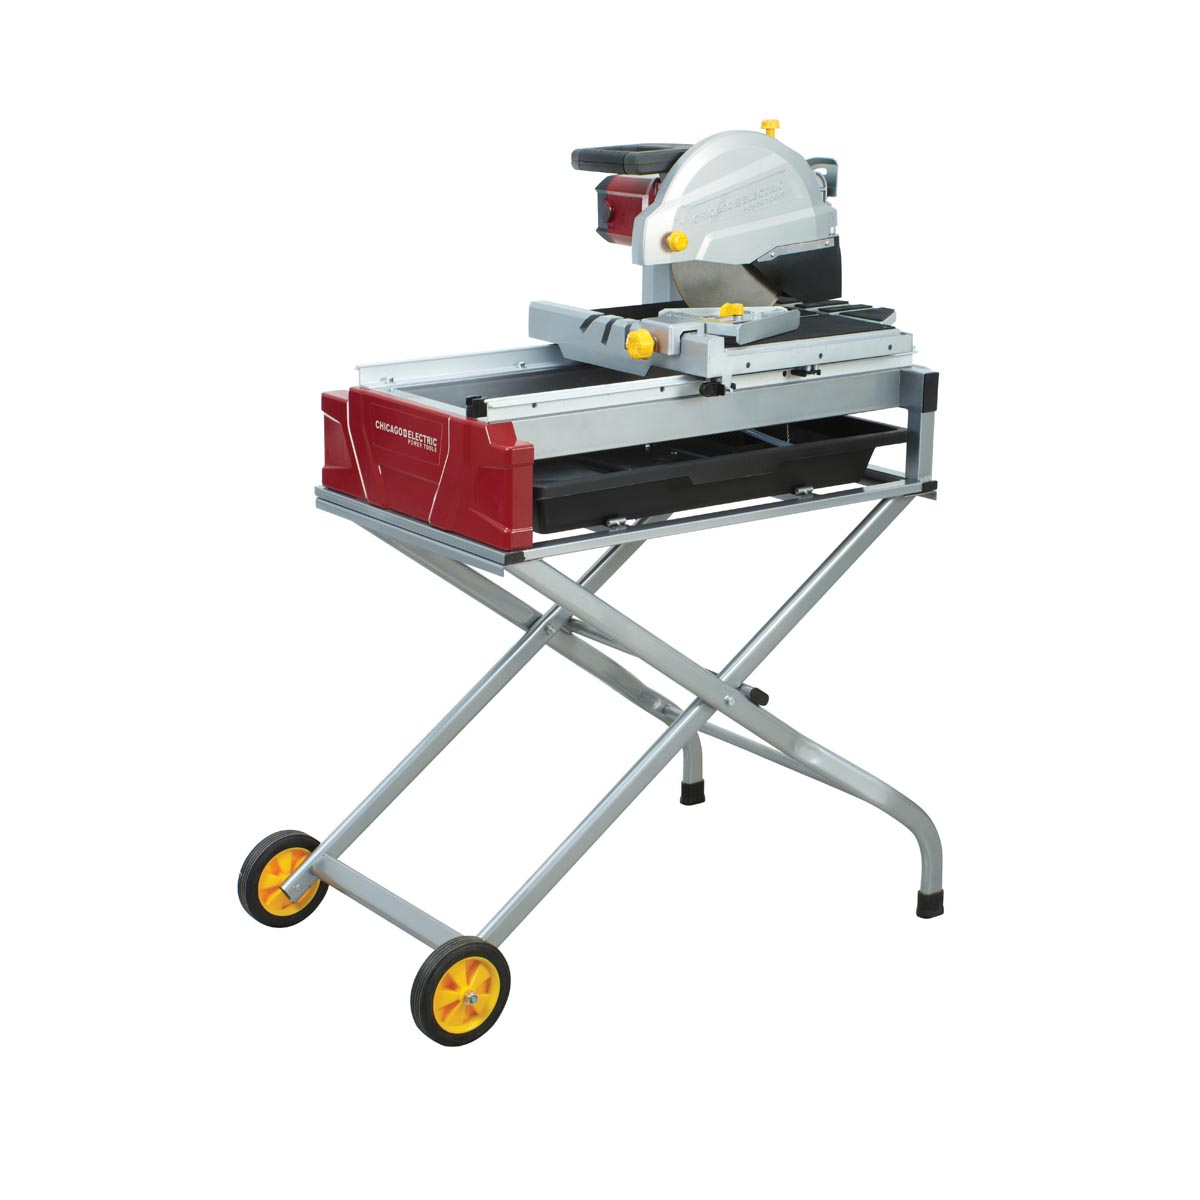 2 5 Hp Tile Brick Saw